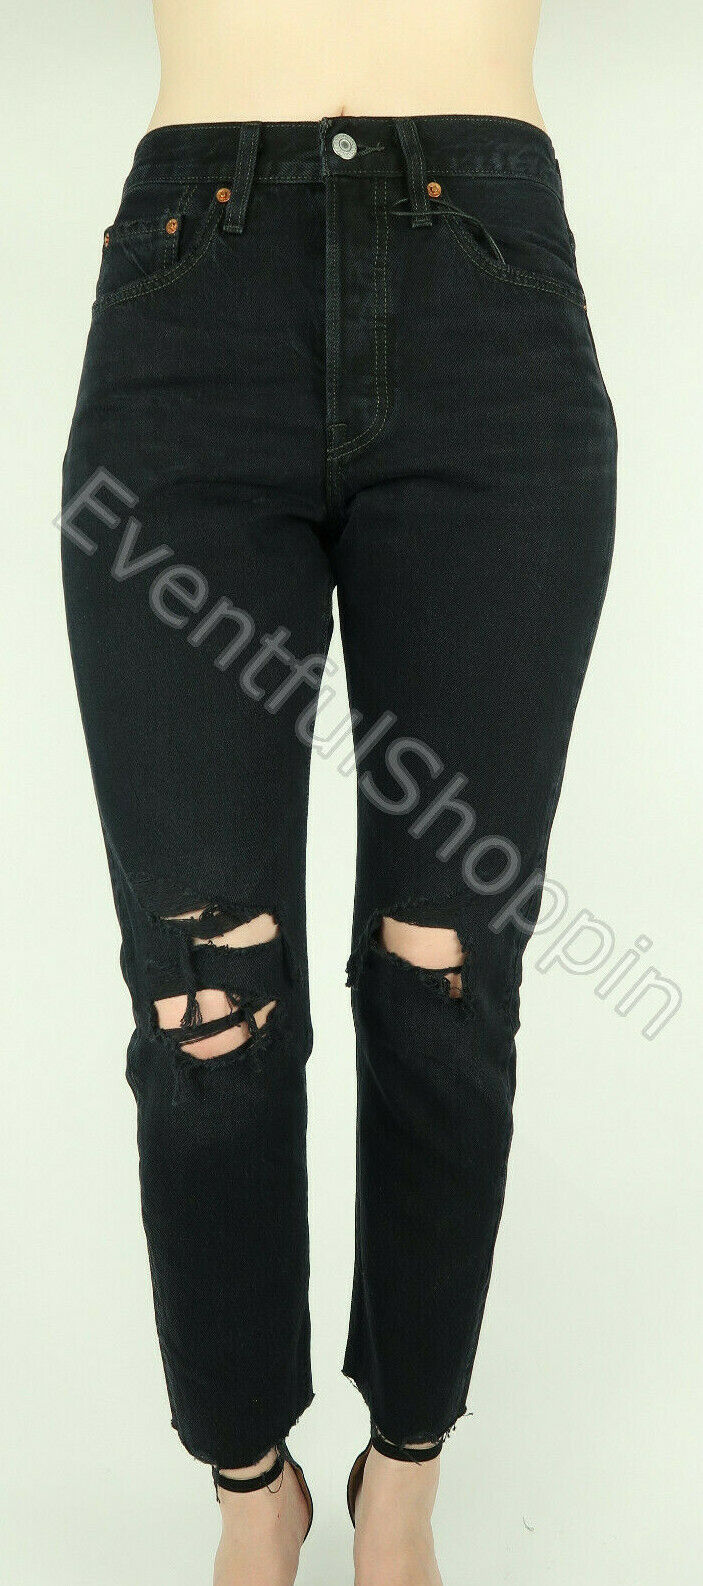 NWT Levis 501 Skinny Premium Big E High Rise Destroyed Jeans